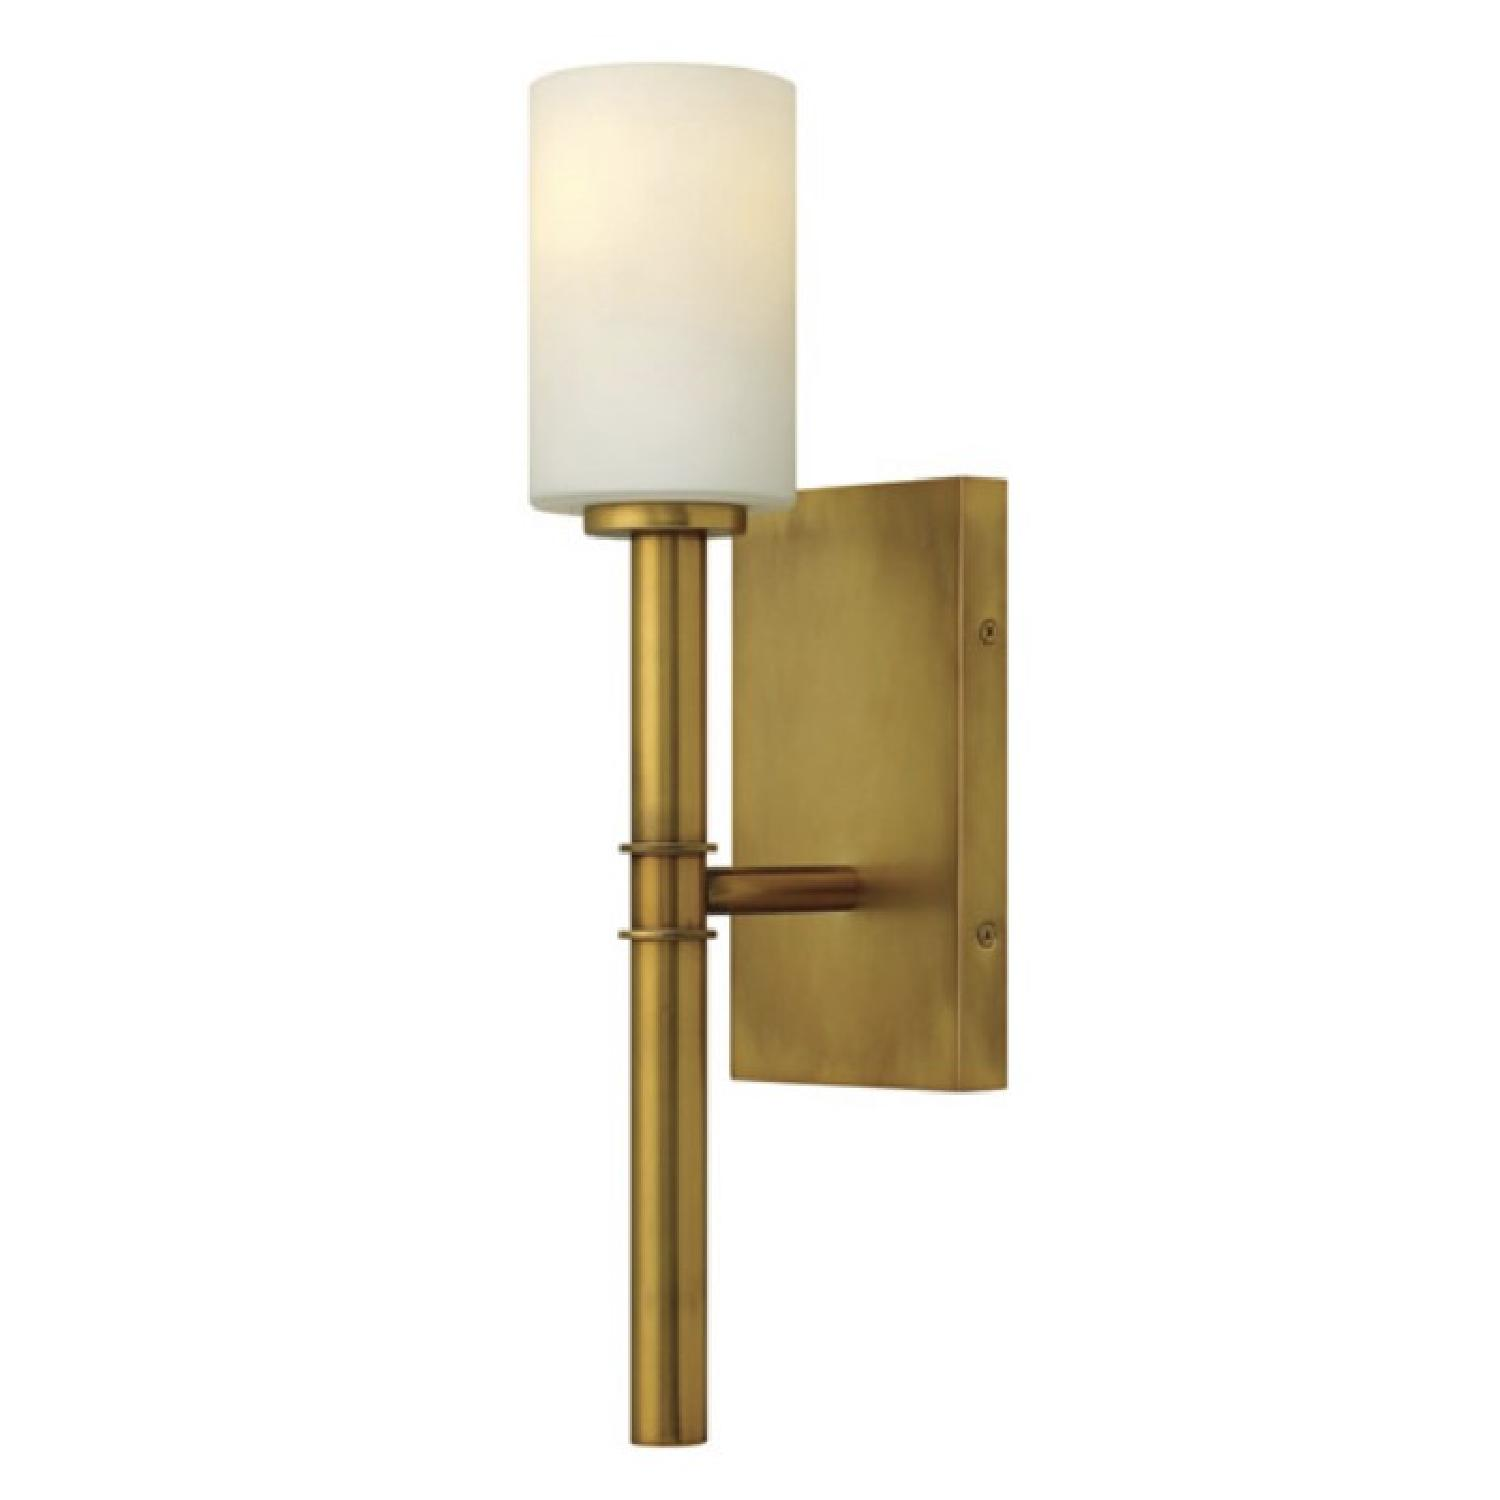 Hinkley Gold Wall Sconce